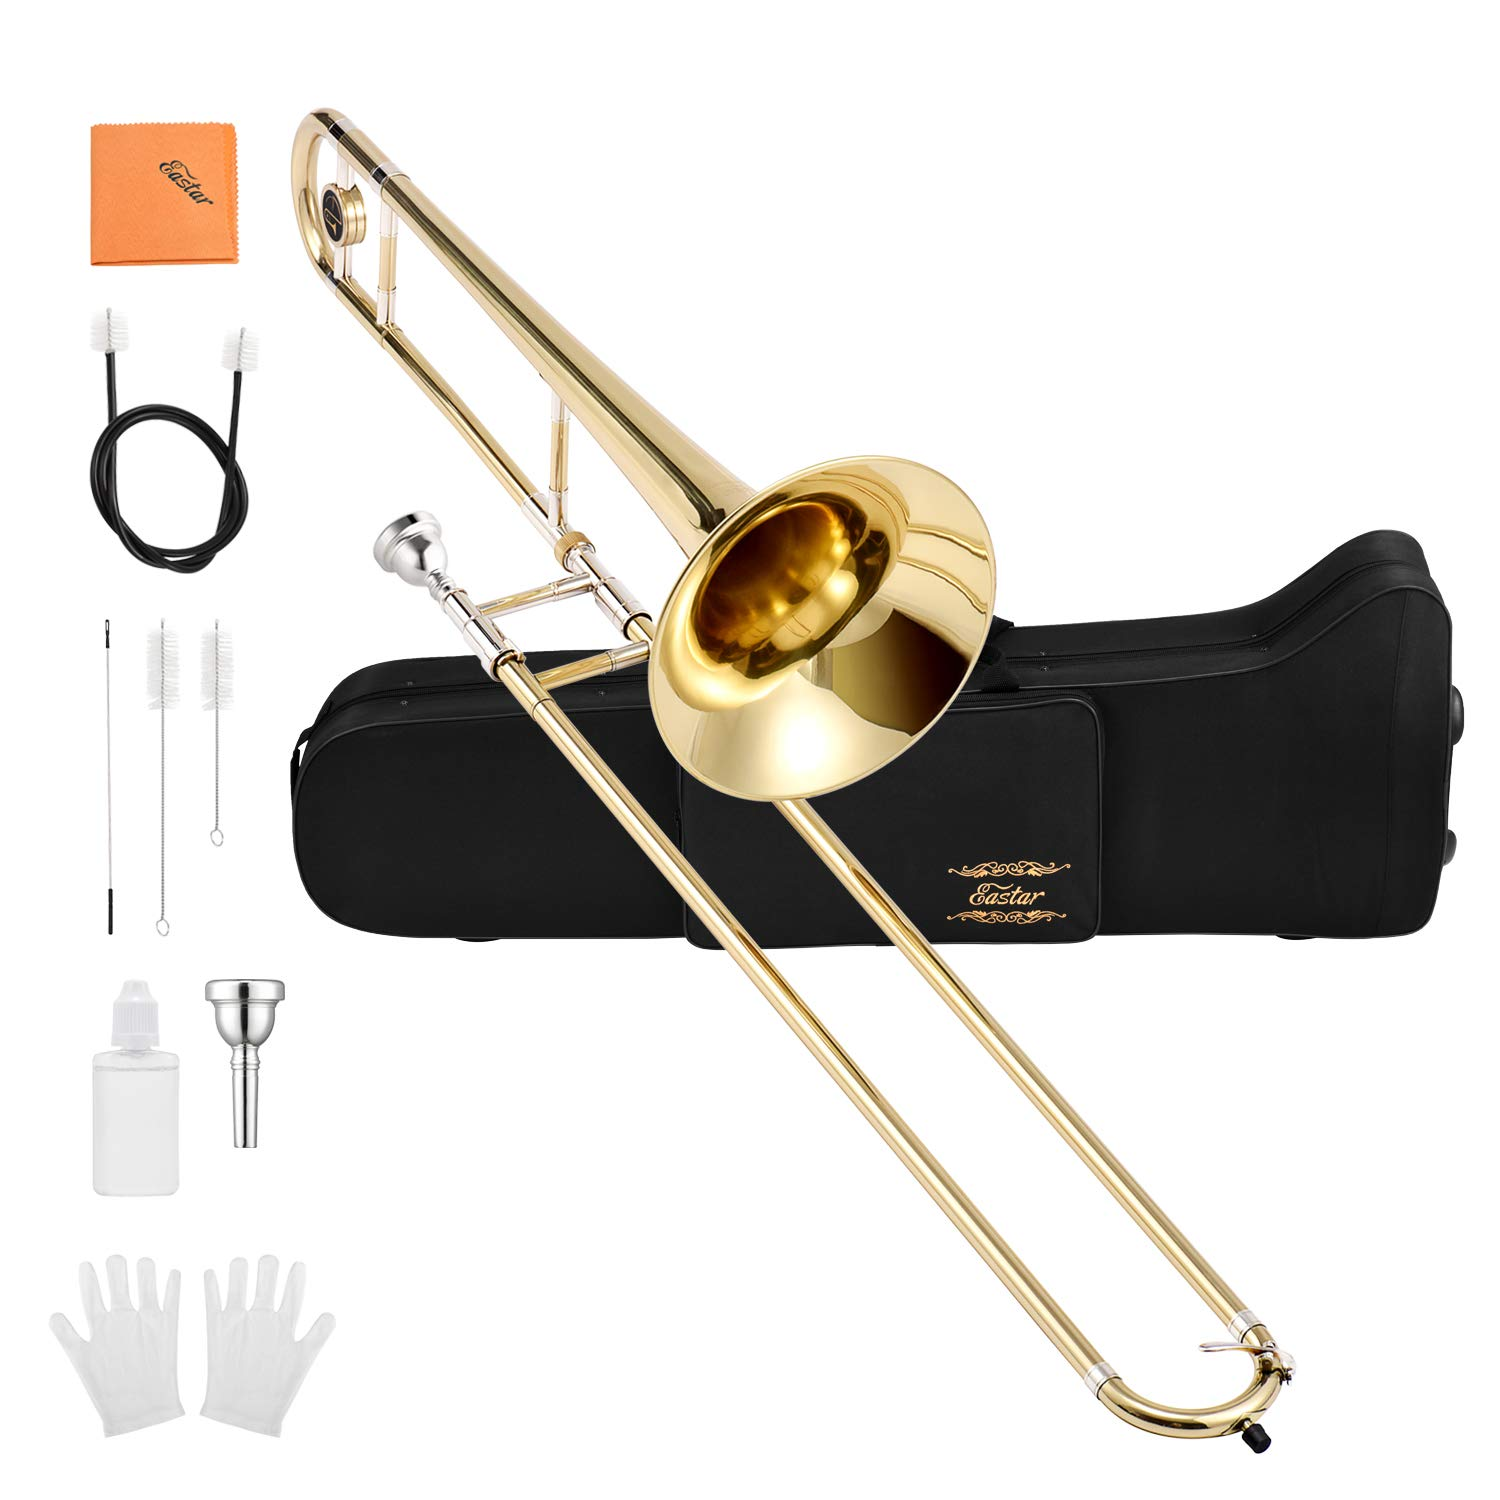 Eastar ETB-330 Bb Tenor Trombone Brass with Hard Case Mouthpiece Cleaning Kit & Care Kit Standard Student Beginner Trombone by Eastar (Image #1)